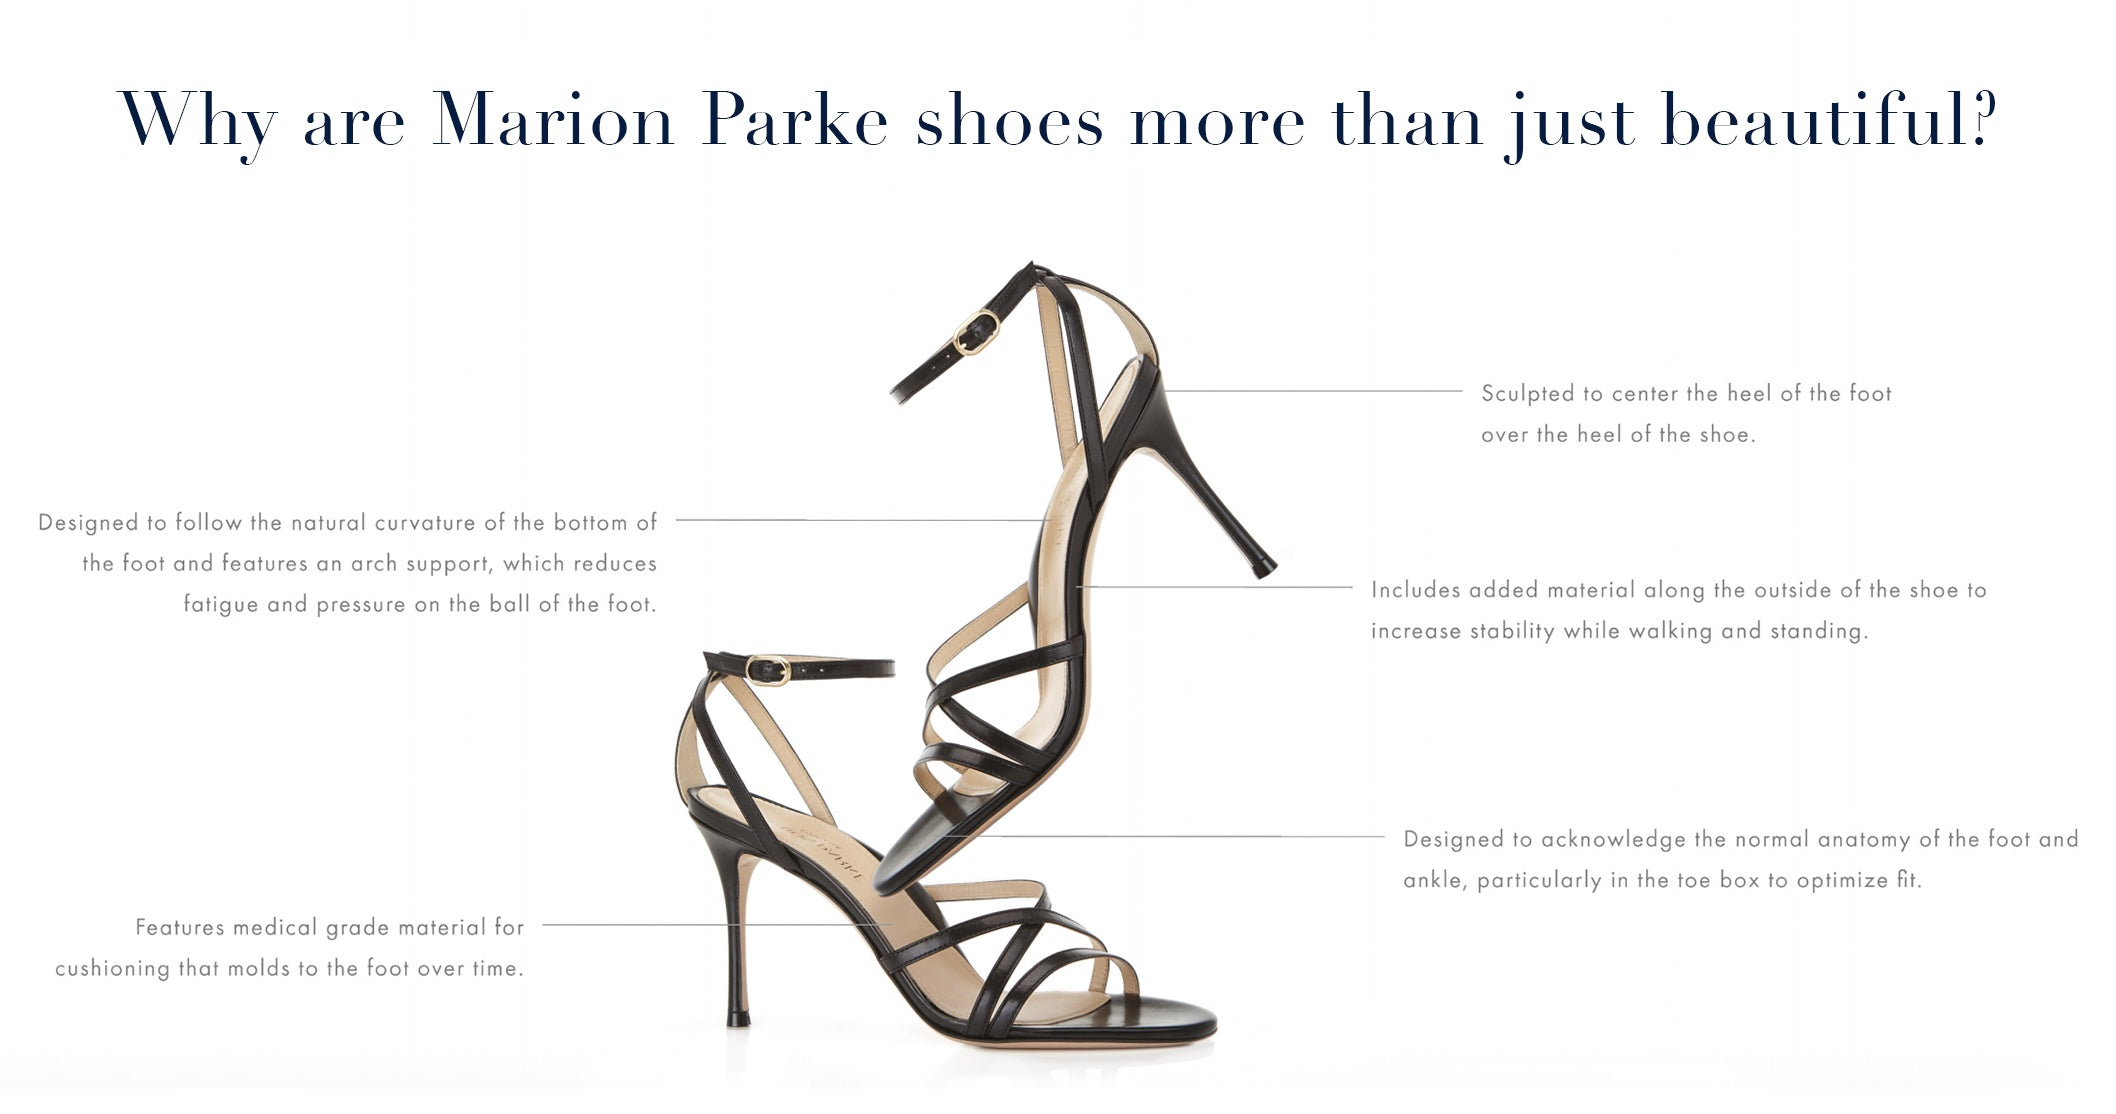 Why Marion Parke